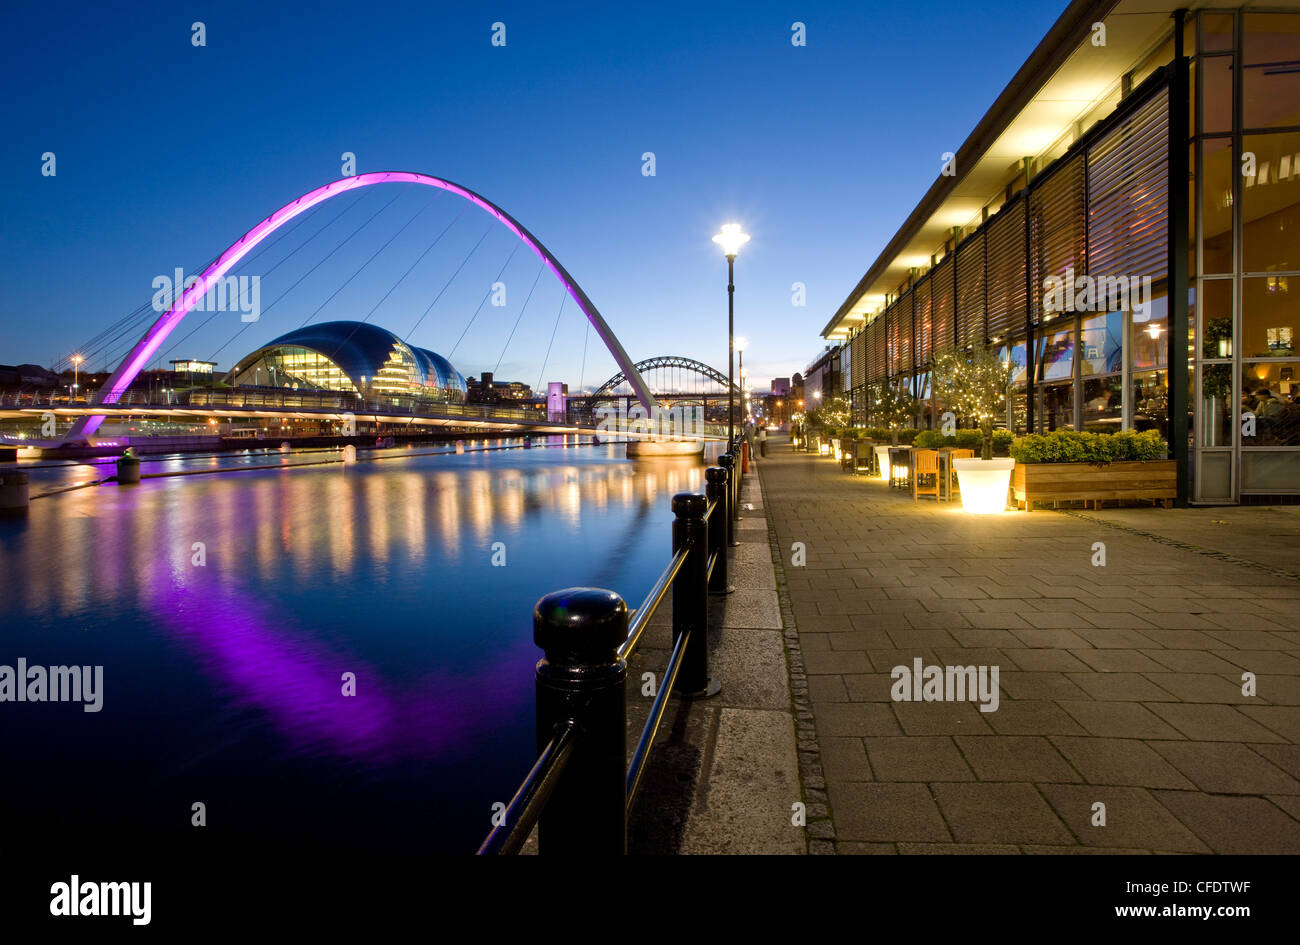 Newcastle Quayside, Gateshead Millennium Bridge and the Arched Bridge, Newcastle-upon-Tyne, Tyne and Wear, England, - Stock Image